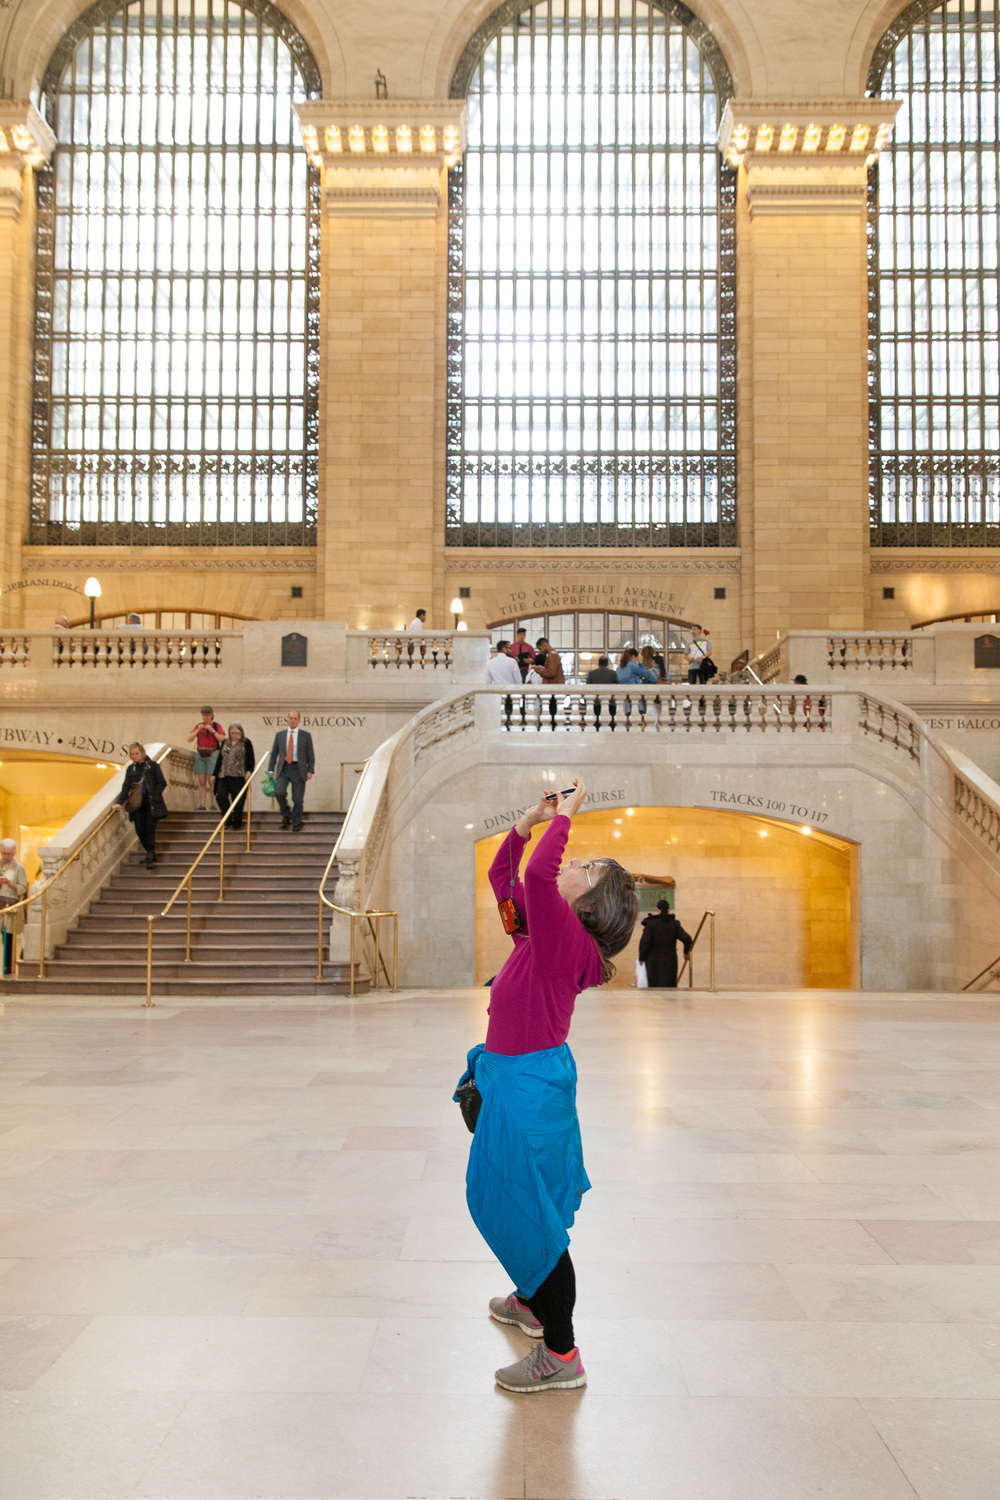 Grand Central Station New York editorial photographer